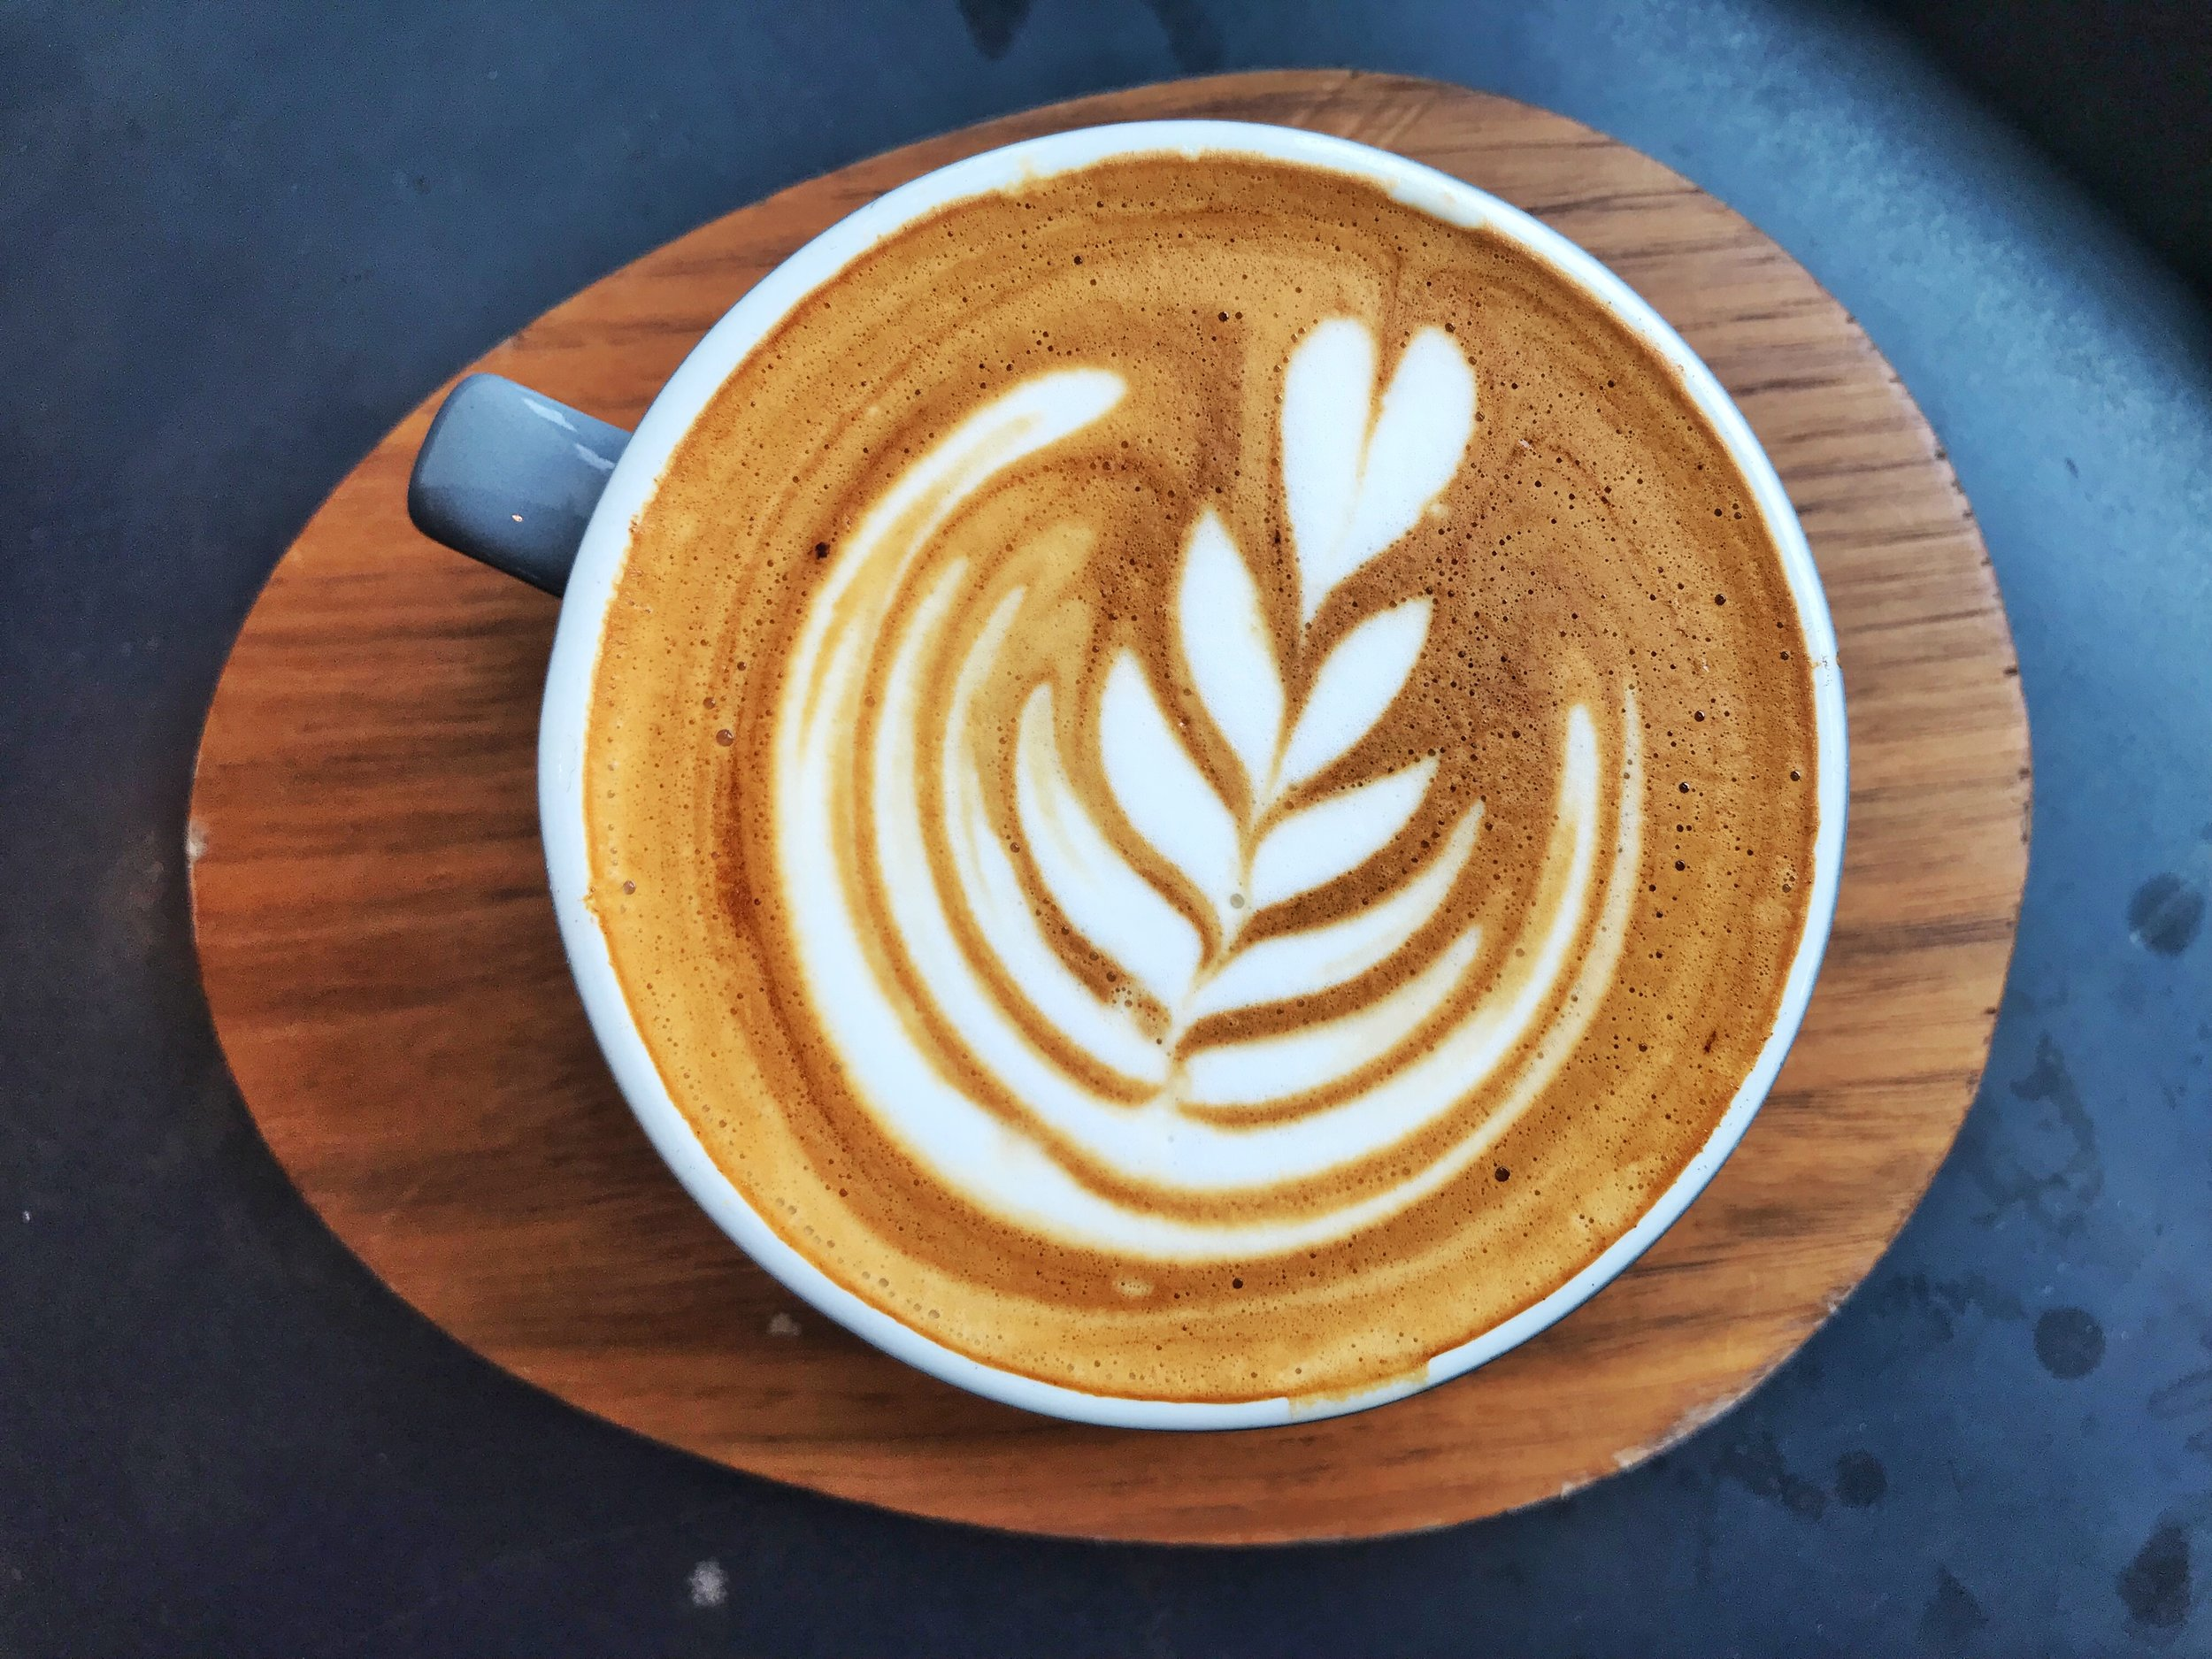 """ [A] favorite drink on the menu is the Cubano, which is a Saigon cinnamon simple syrup that we make in-house and we serve it as a cappuccino,"" says Eric Peters.  The Cubano is 6 oz. steamed milk and espresso, accented with the Saigon cinnamon simple syrup. (And it's as delicious as it sounds!)"